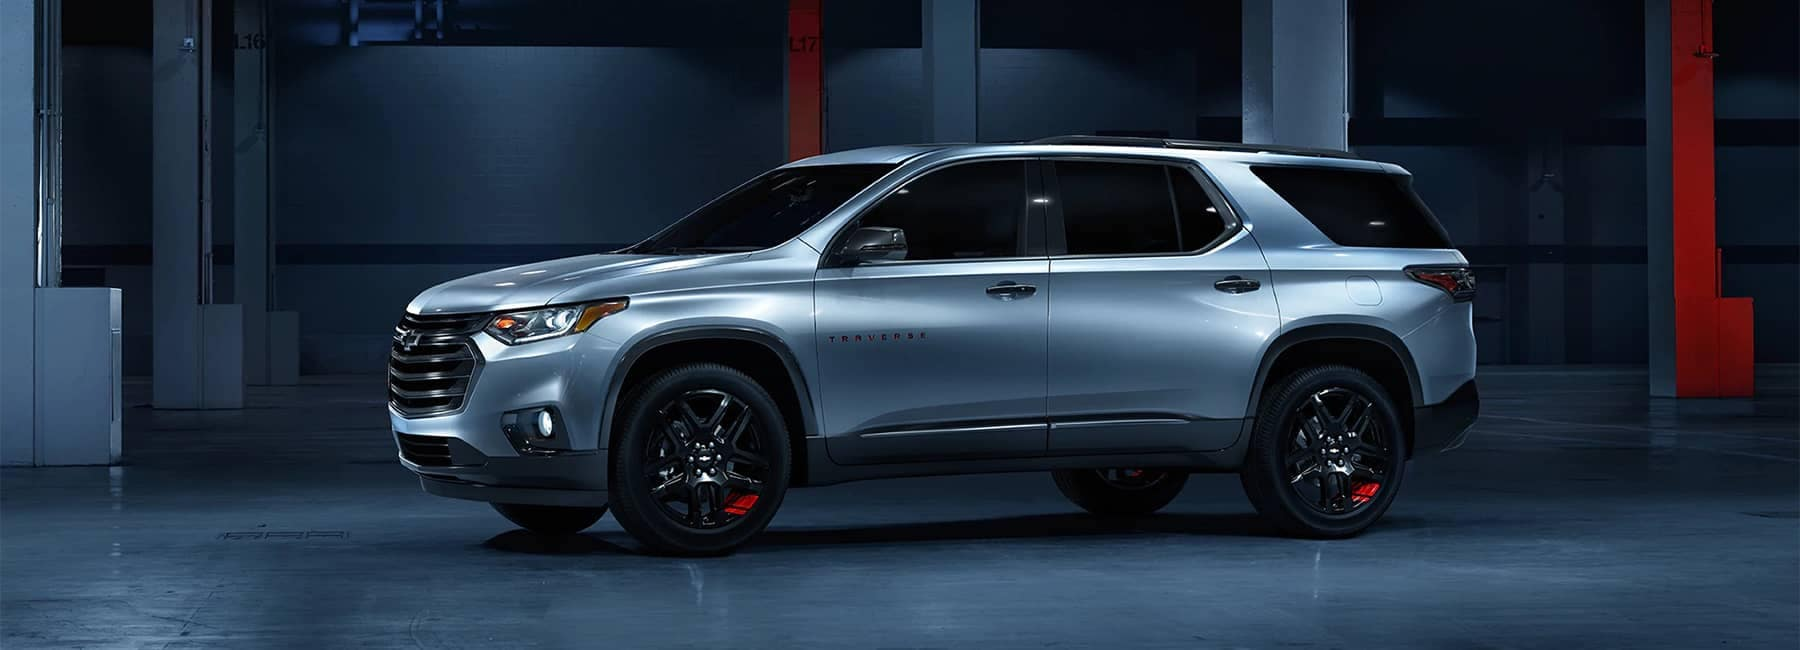 2020 Chevrolet Traverse Redline Mid-Size SUV Side Exterior